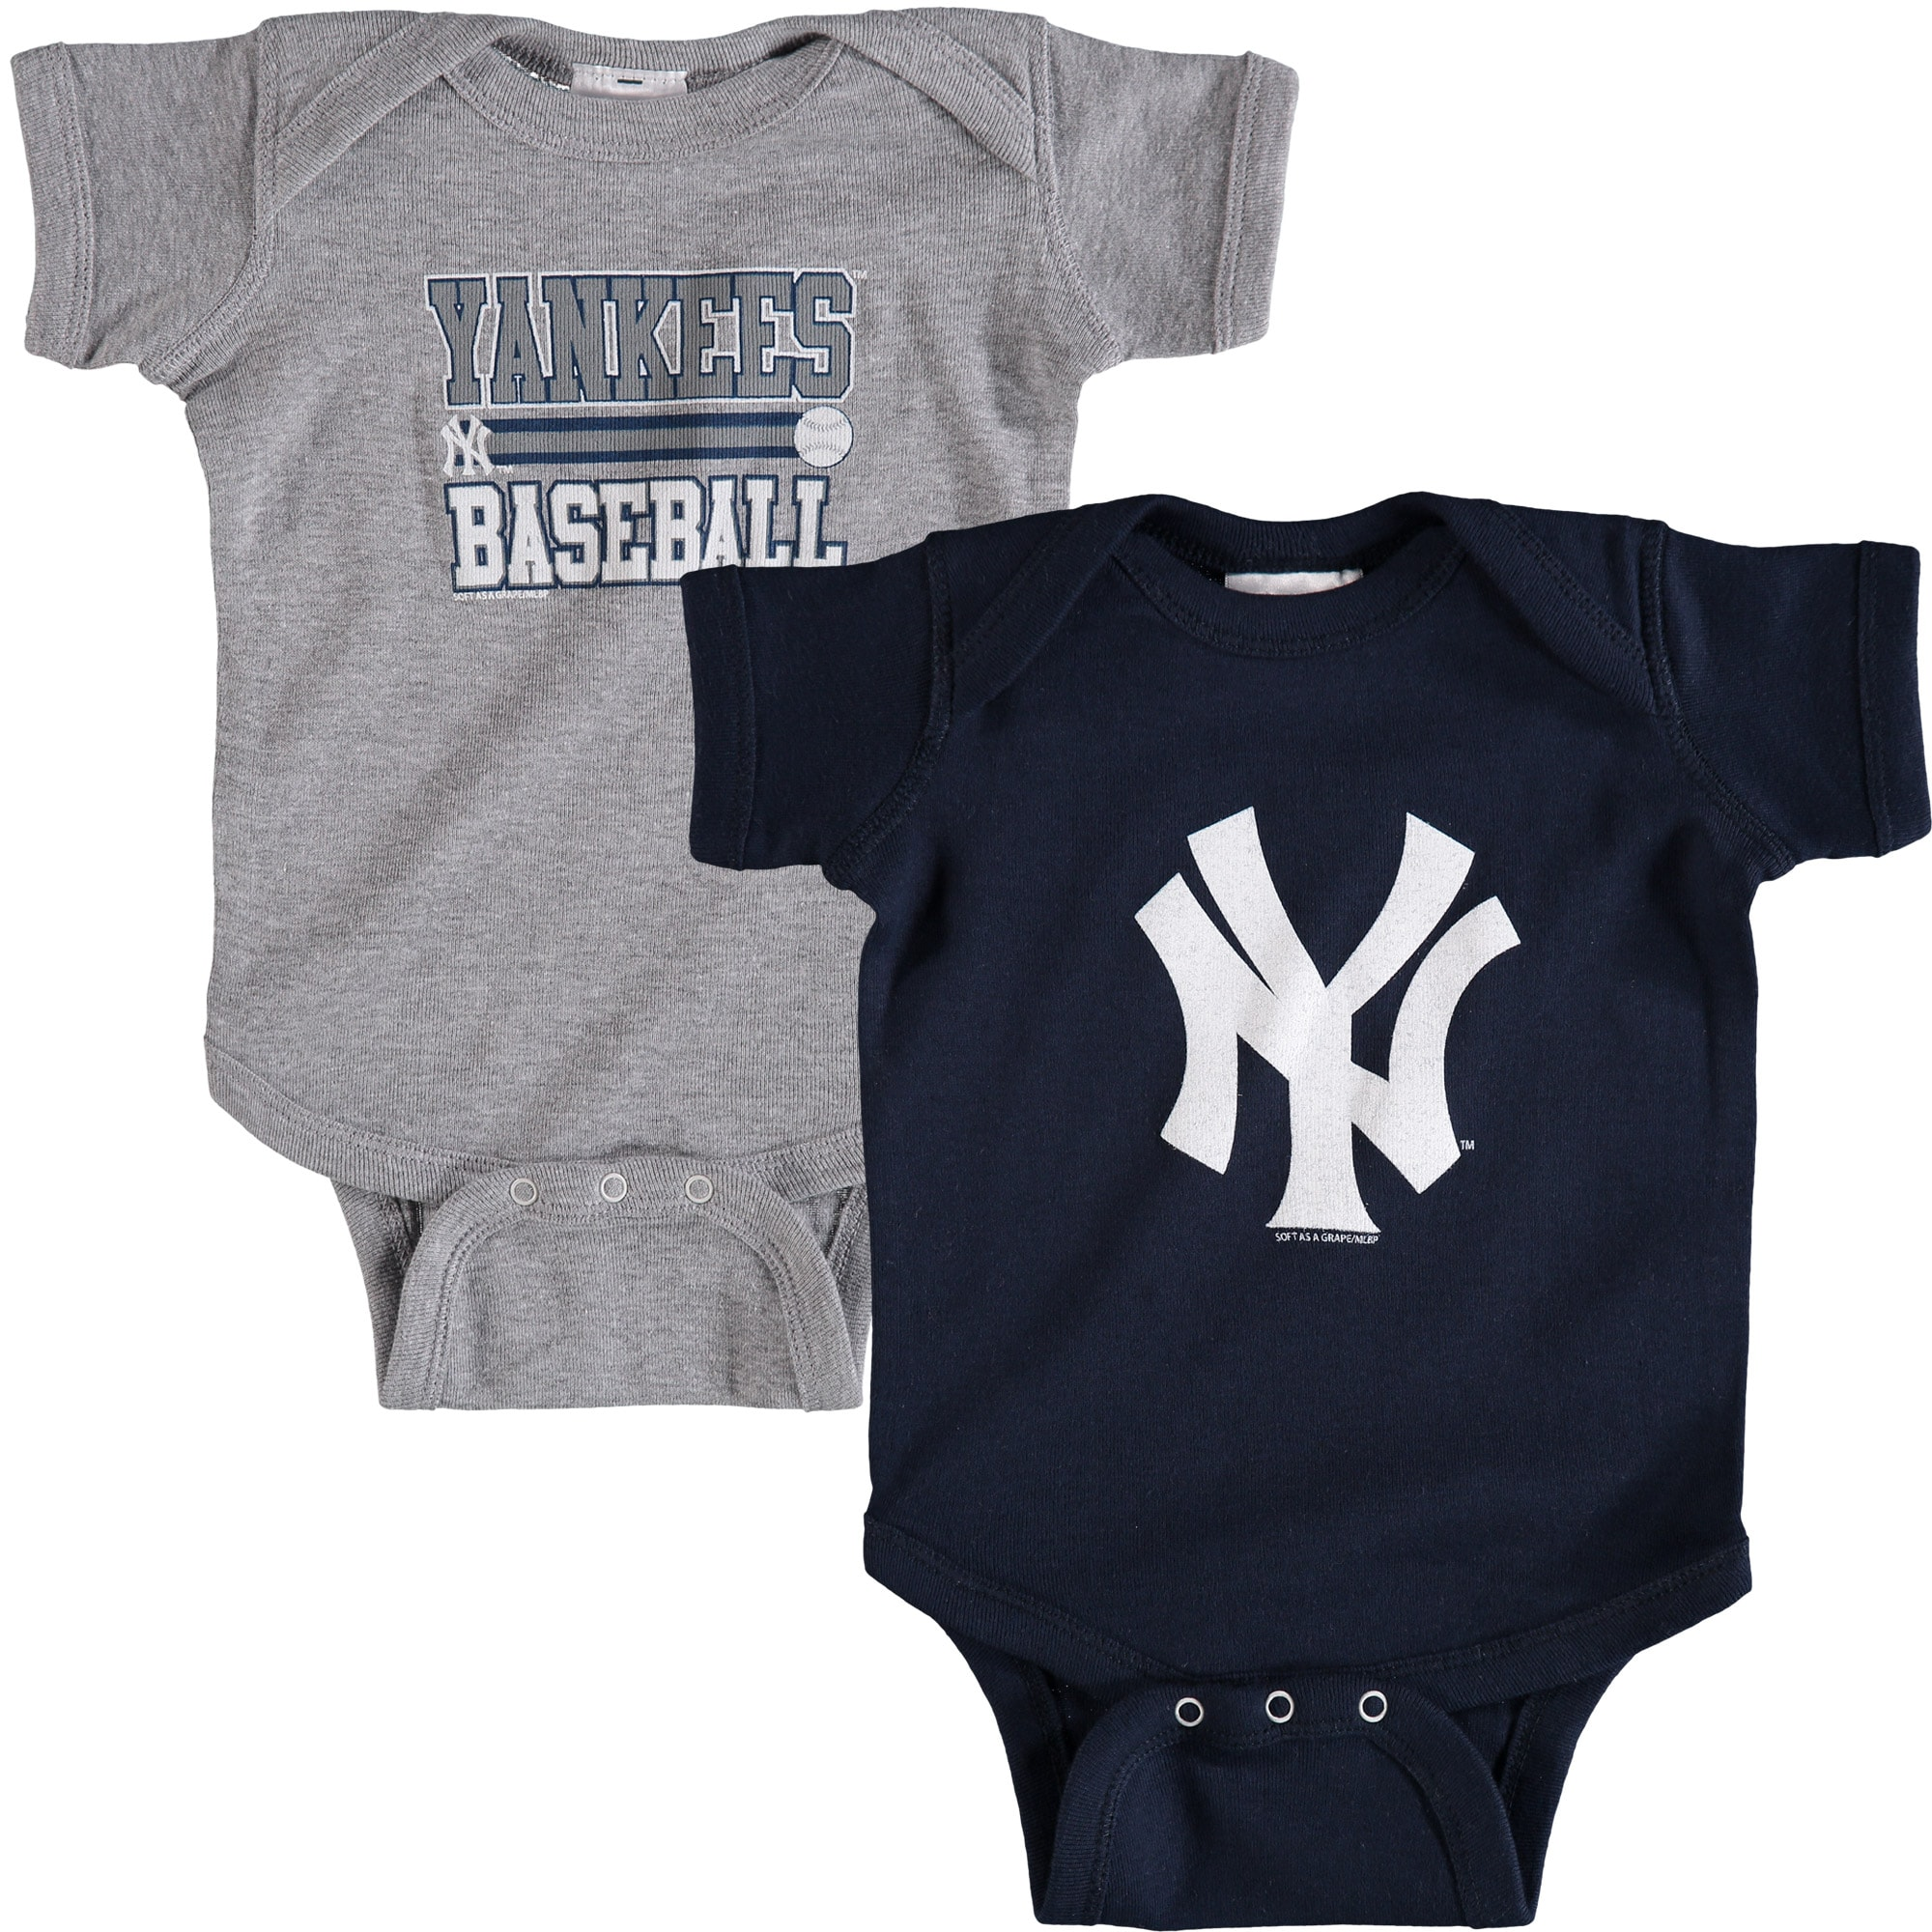 New York Yankees Soft as a Grape Newborn & Infant 2-Piece Body Suit - Navy/Gray